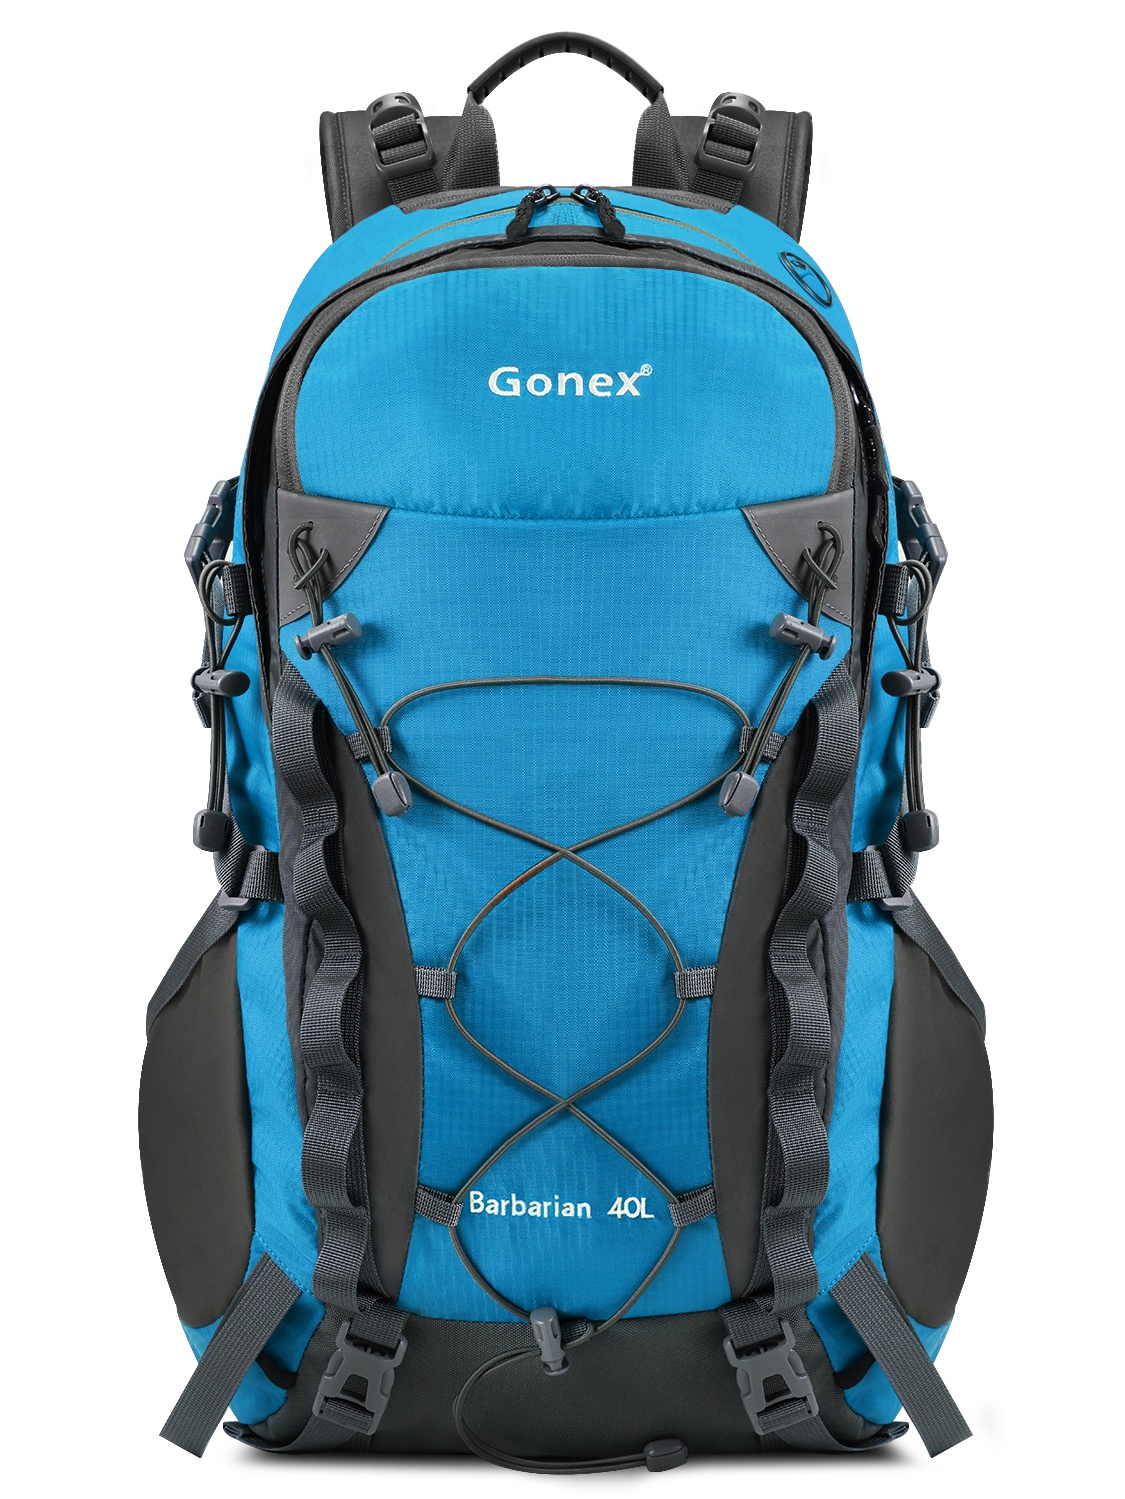 Gonex Barbarian Outdoor Hiking Climbing Backpack Daypacks Waterproof  Mountaineering Bag 40L 7222fb6a9b56f